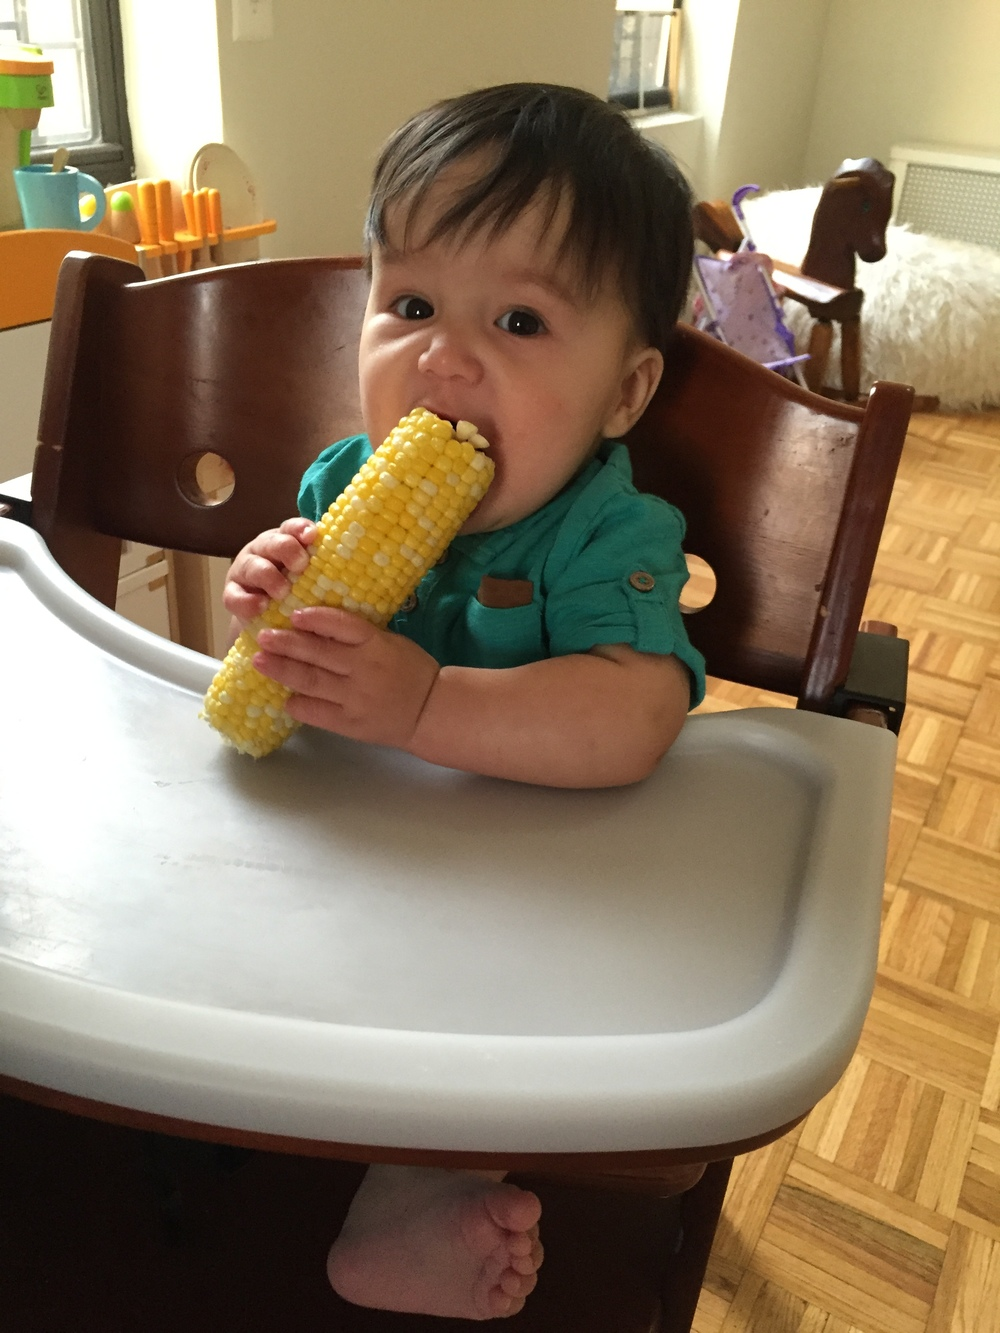 He loved corn!